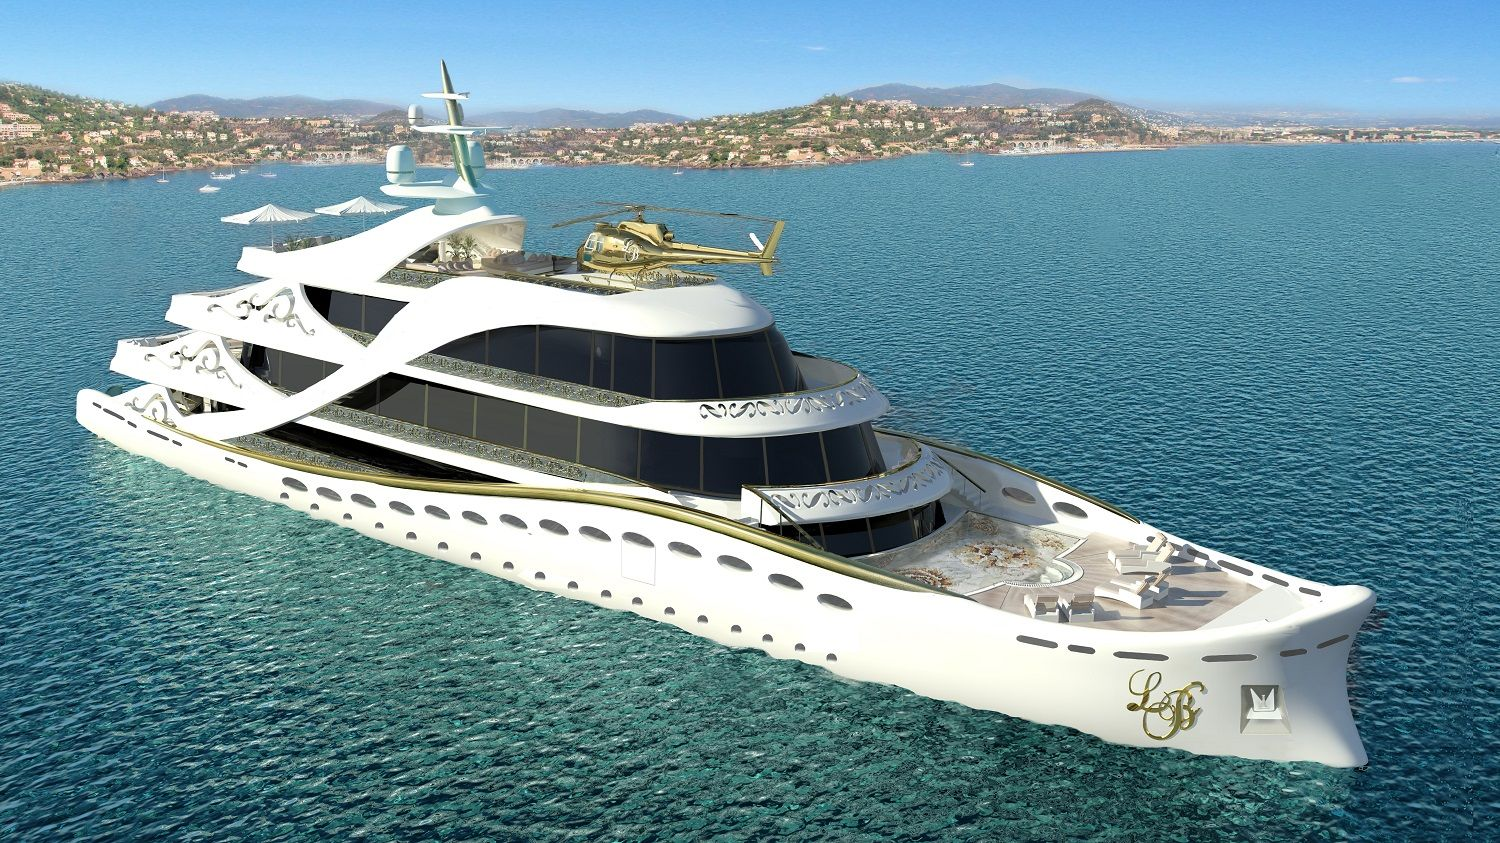 Lidia Bersani Luxury Design ,La Belle, yacht